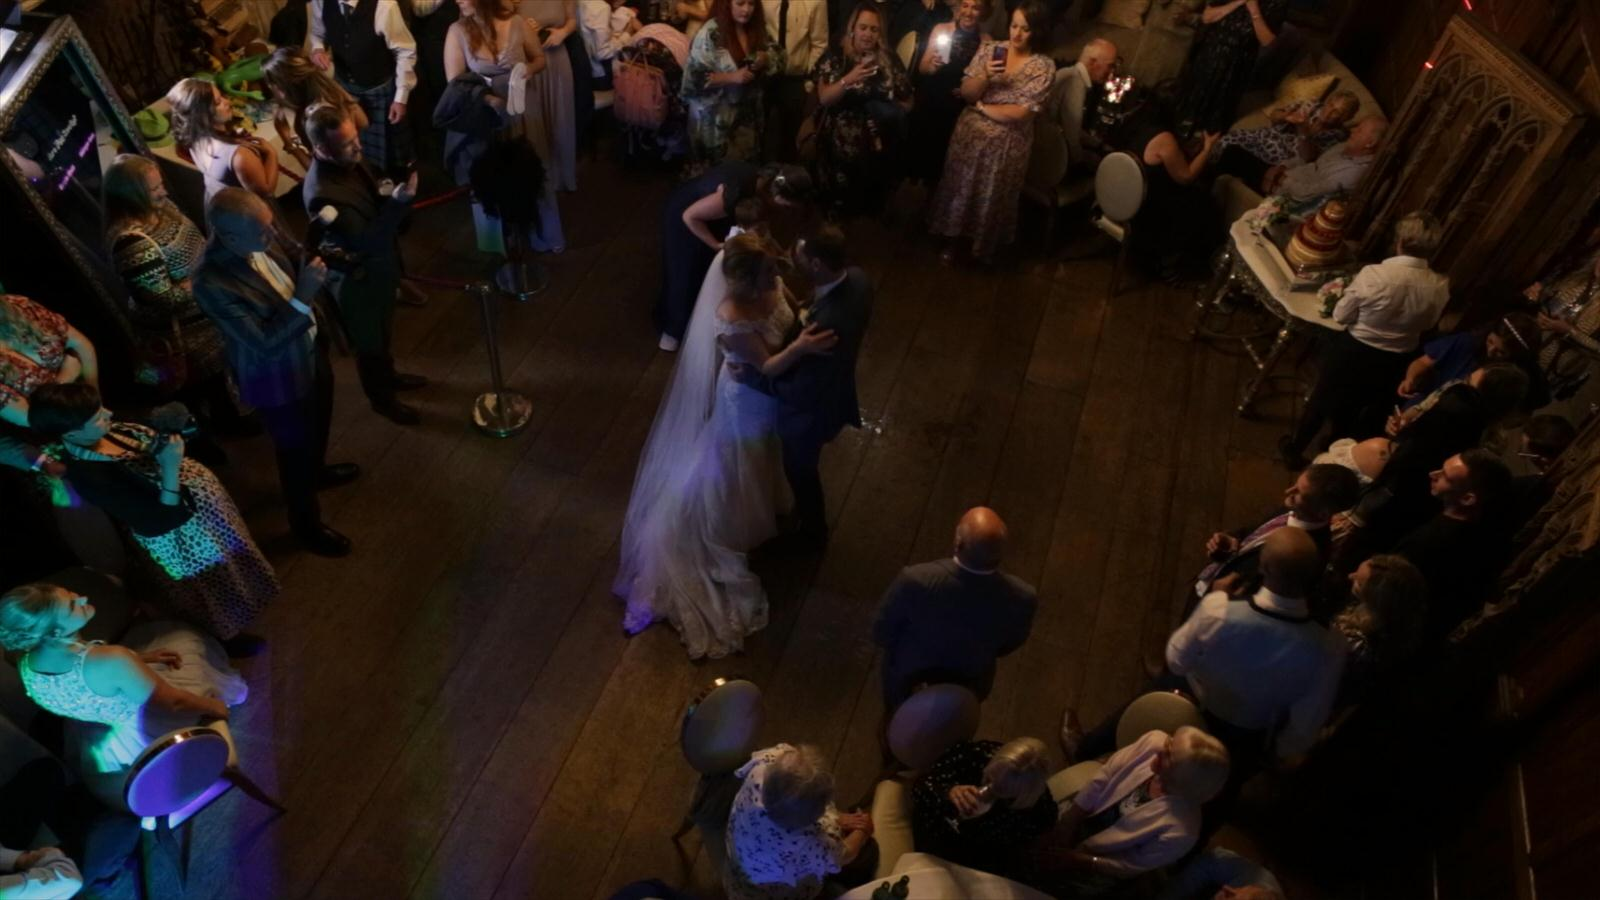 video shot of first dance from balcony at hillbark